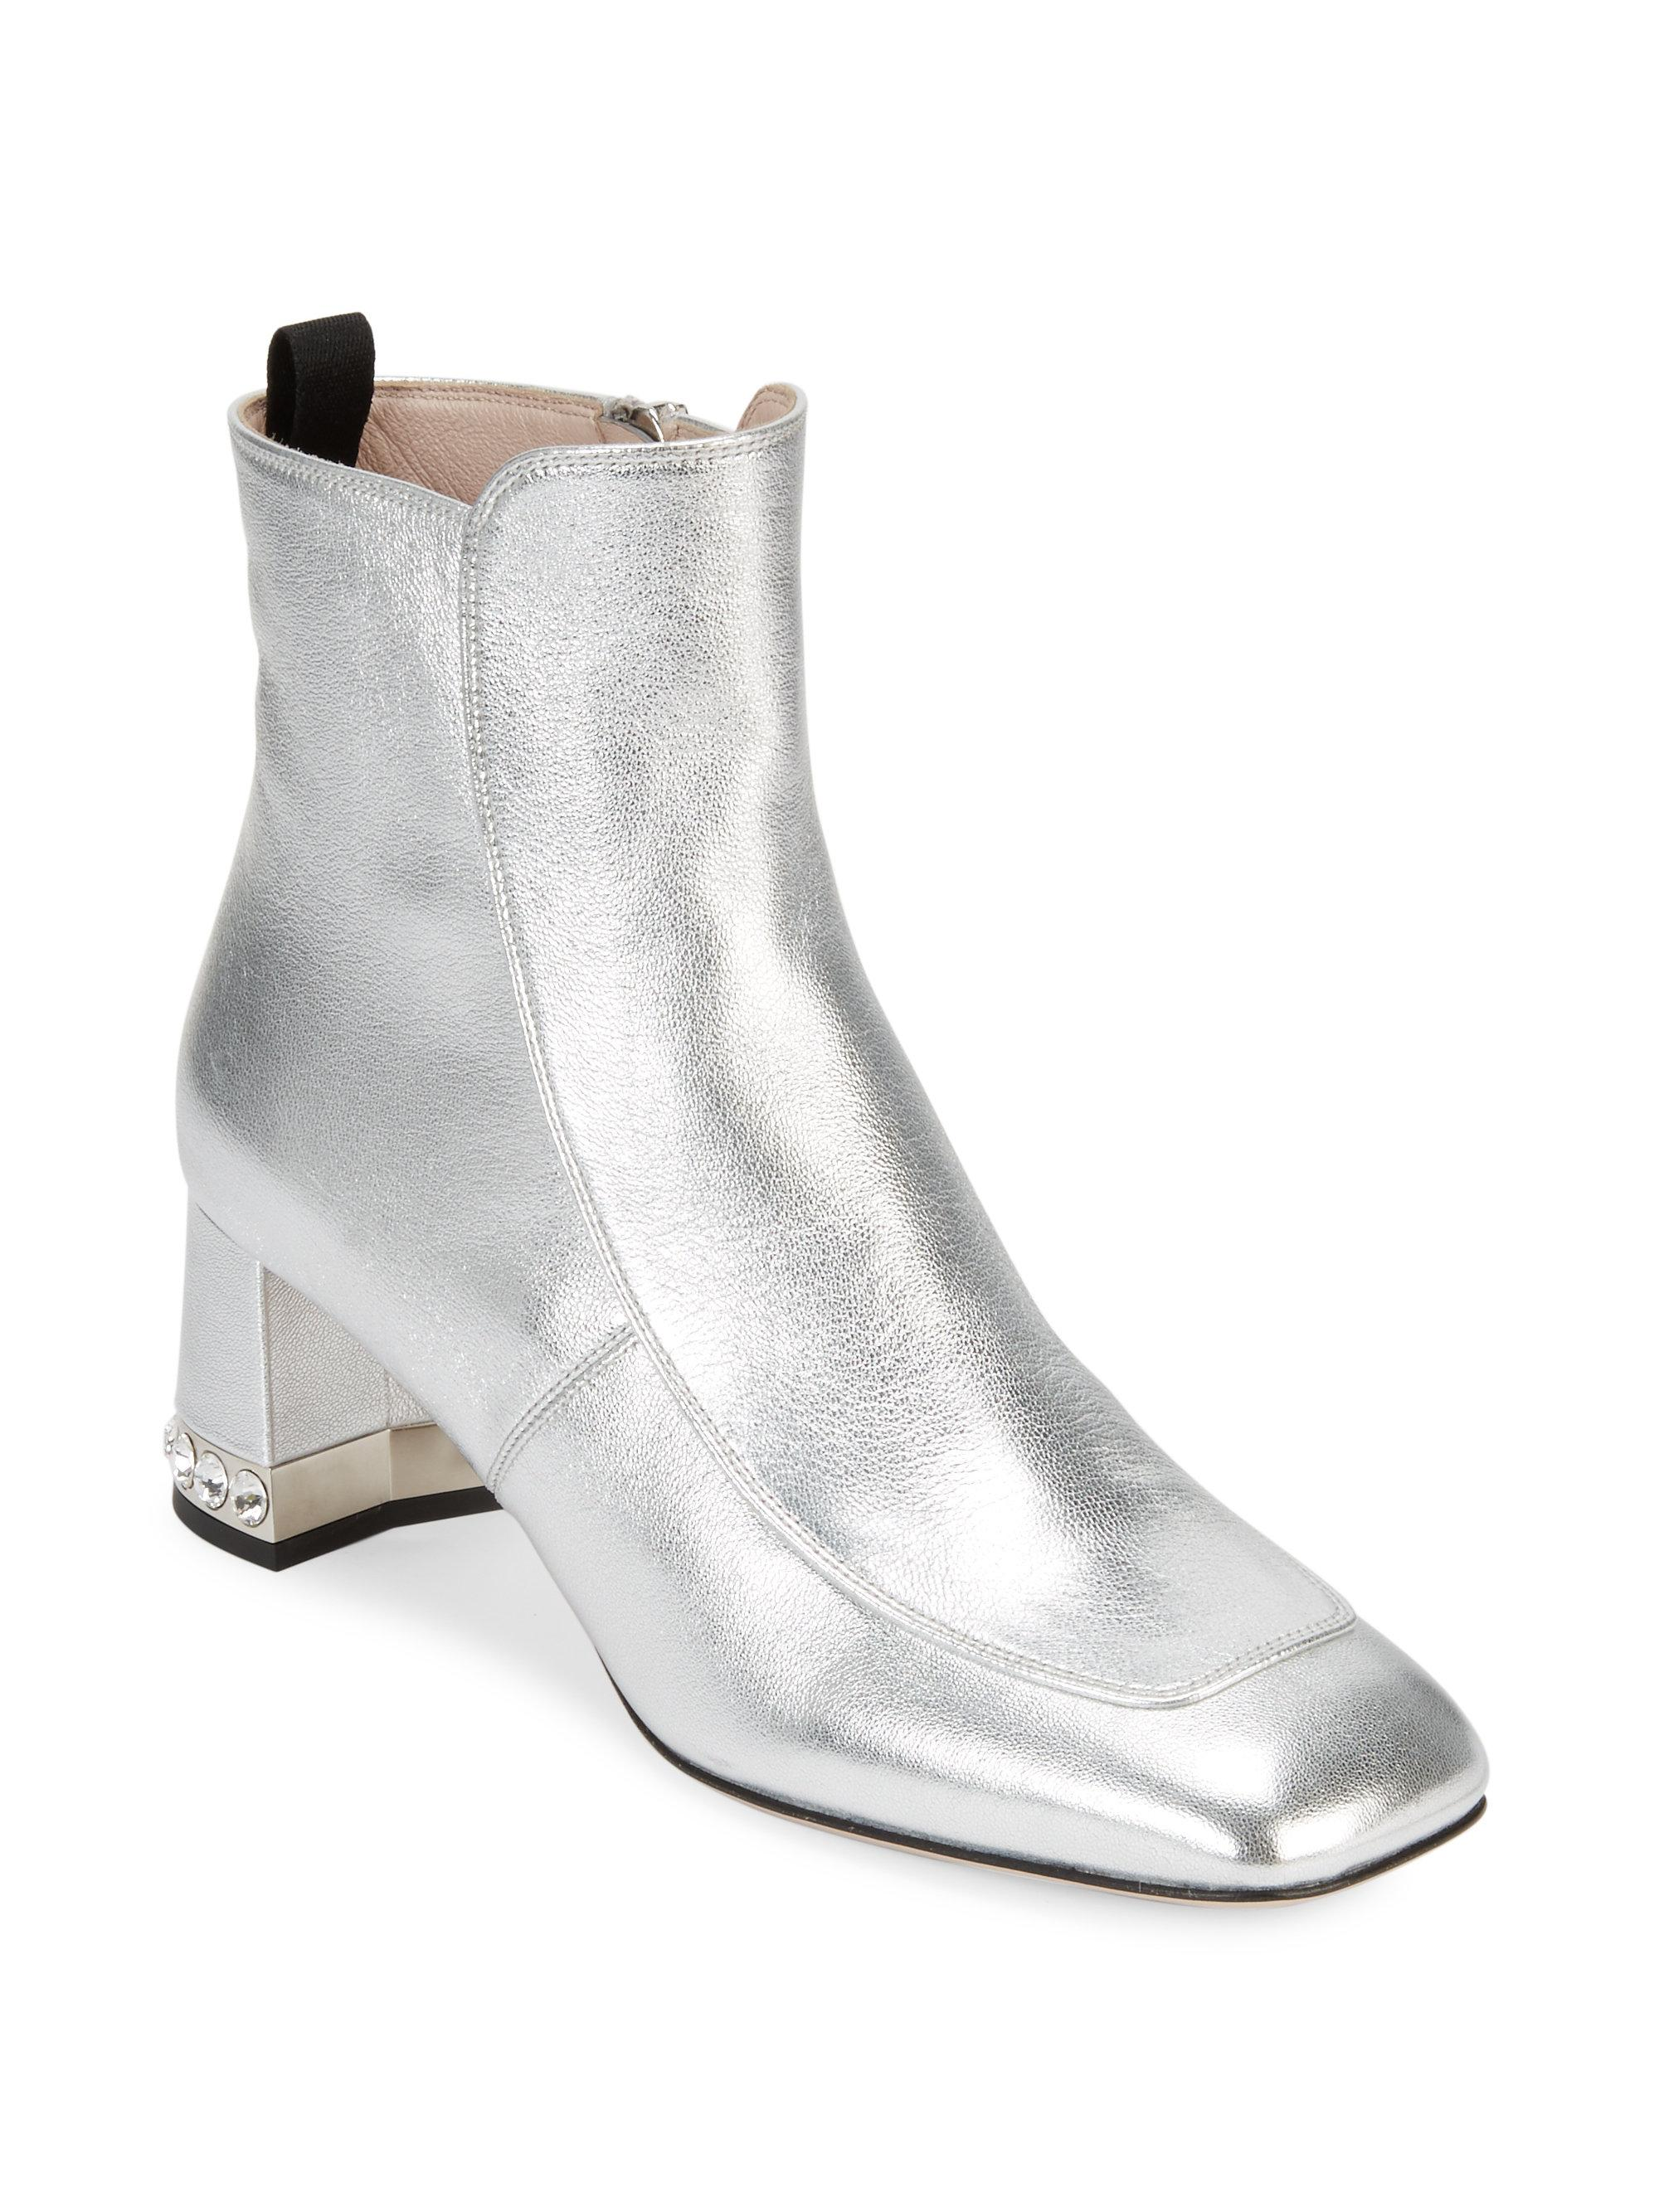 94d0e8022804 Miu Miu Crystal Heel Metallic Booties in Metallic - Lyst